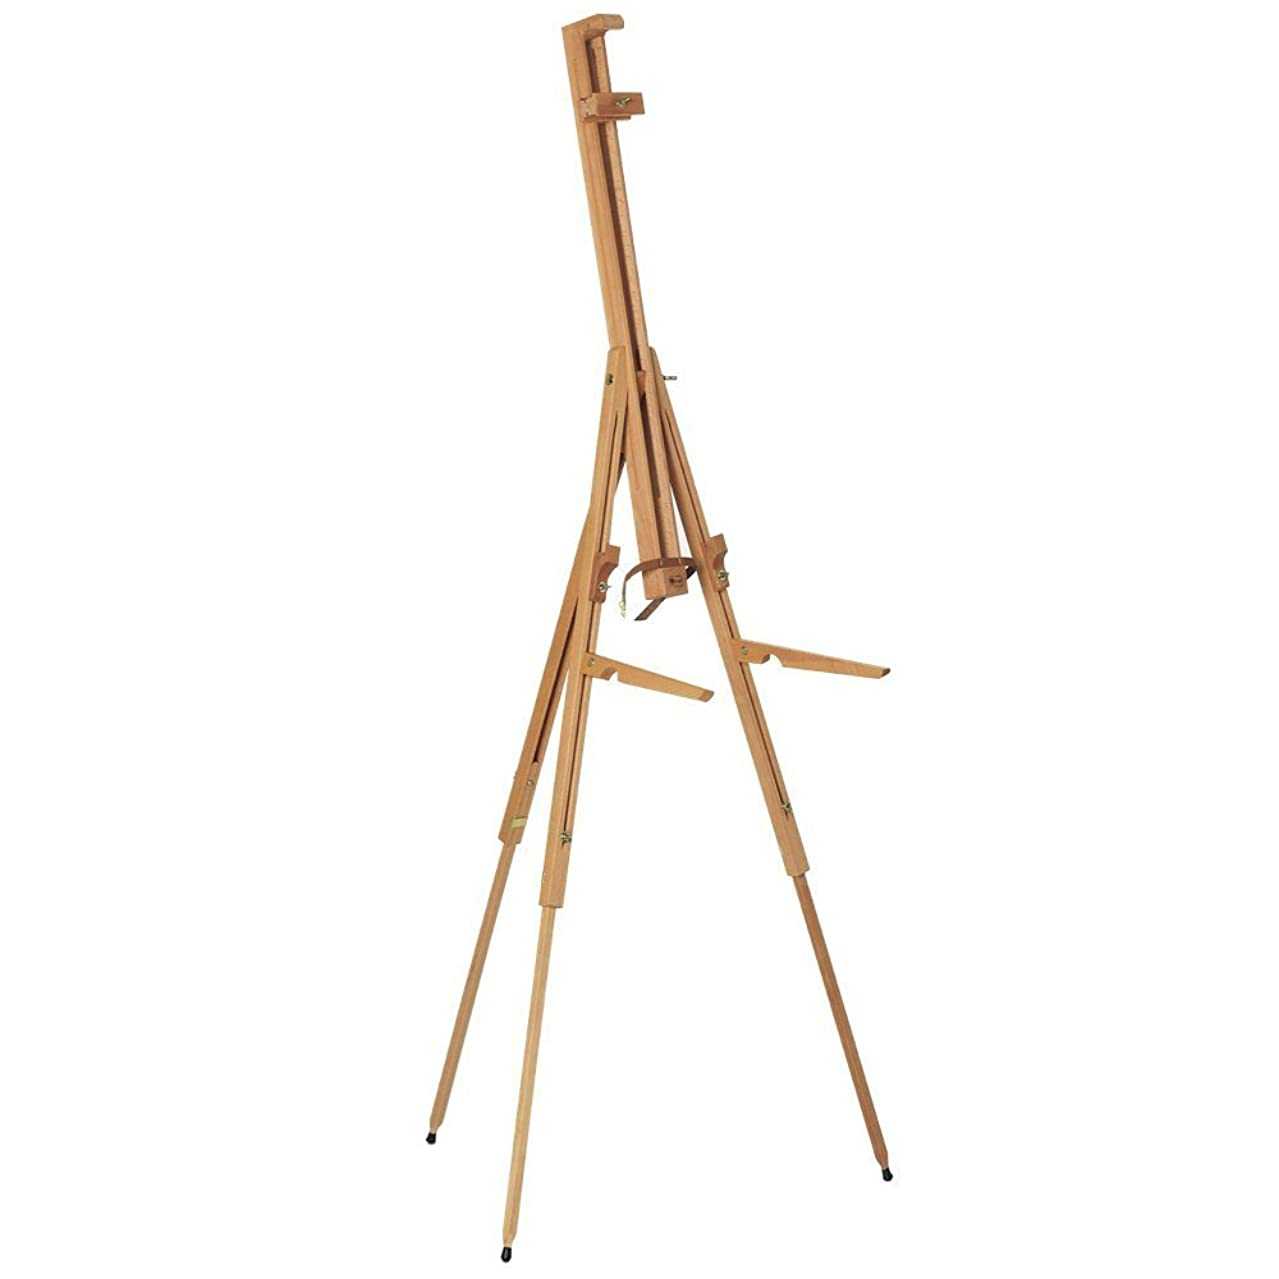 Mabef Easel m400172?Mini Country Wood Arm 8?x 80?x 55?cm